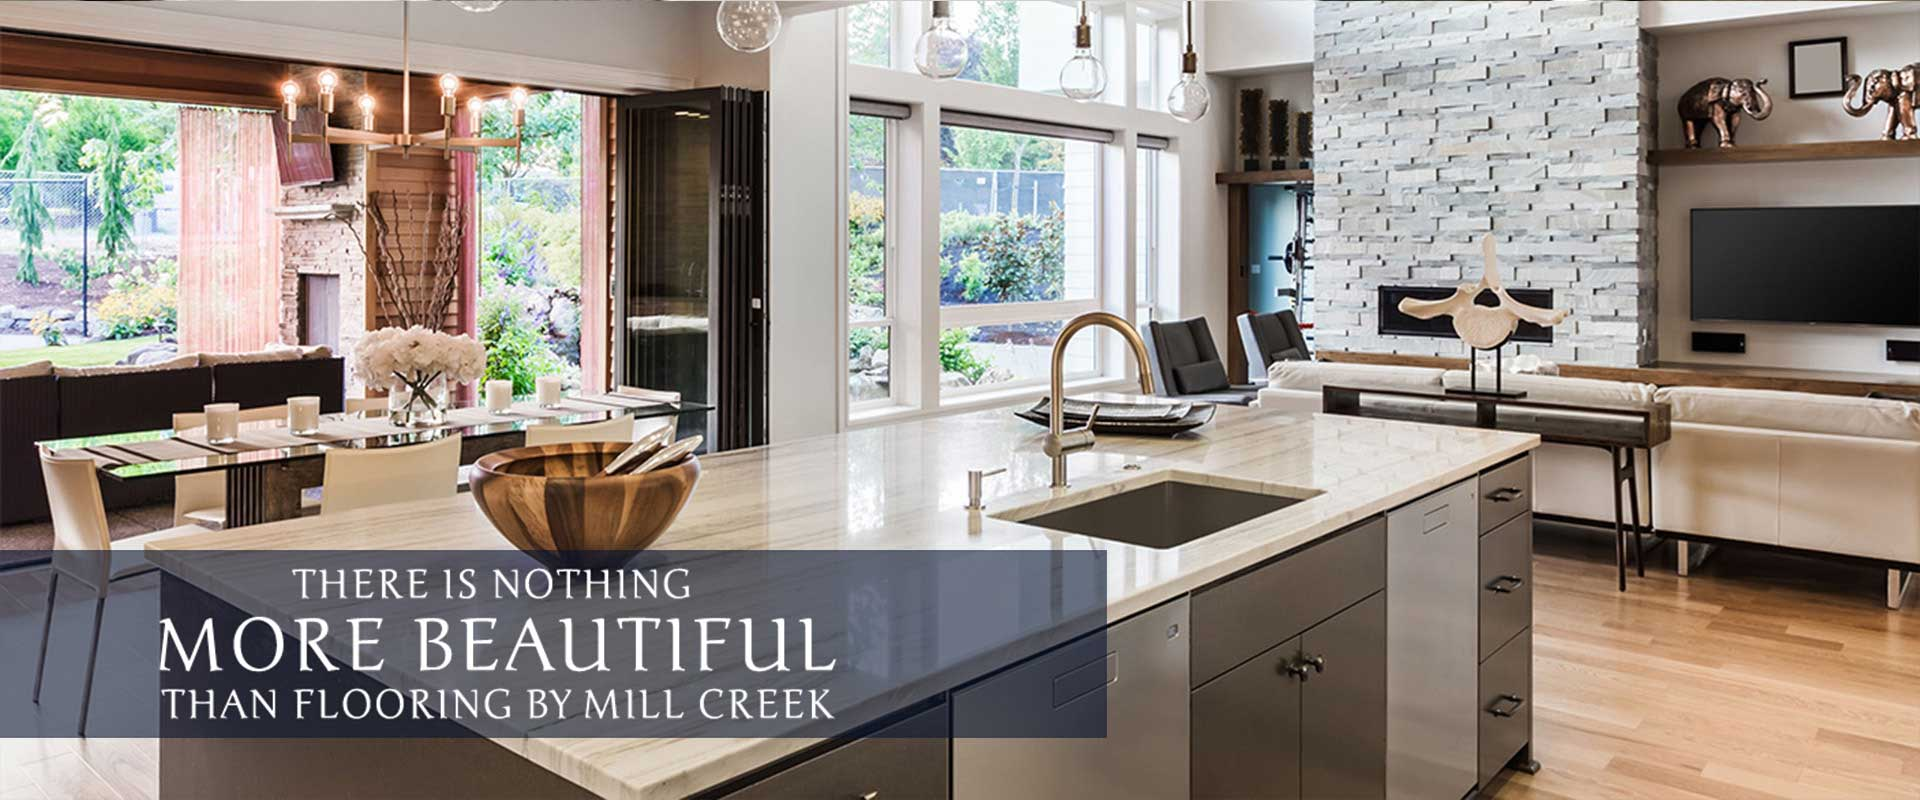 Mill Creek Carpet & Tile - Official Site - Carpet Stores, Wood ...